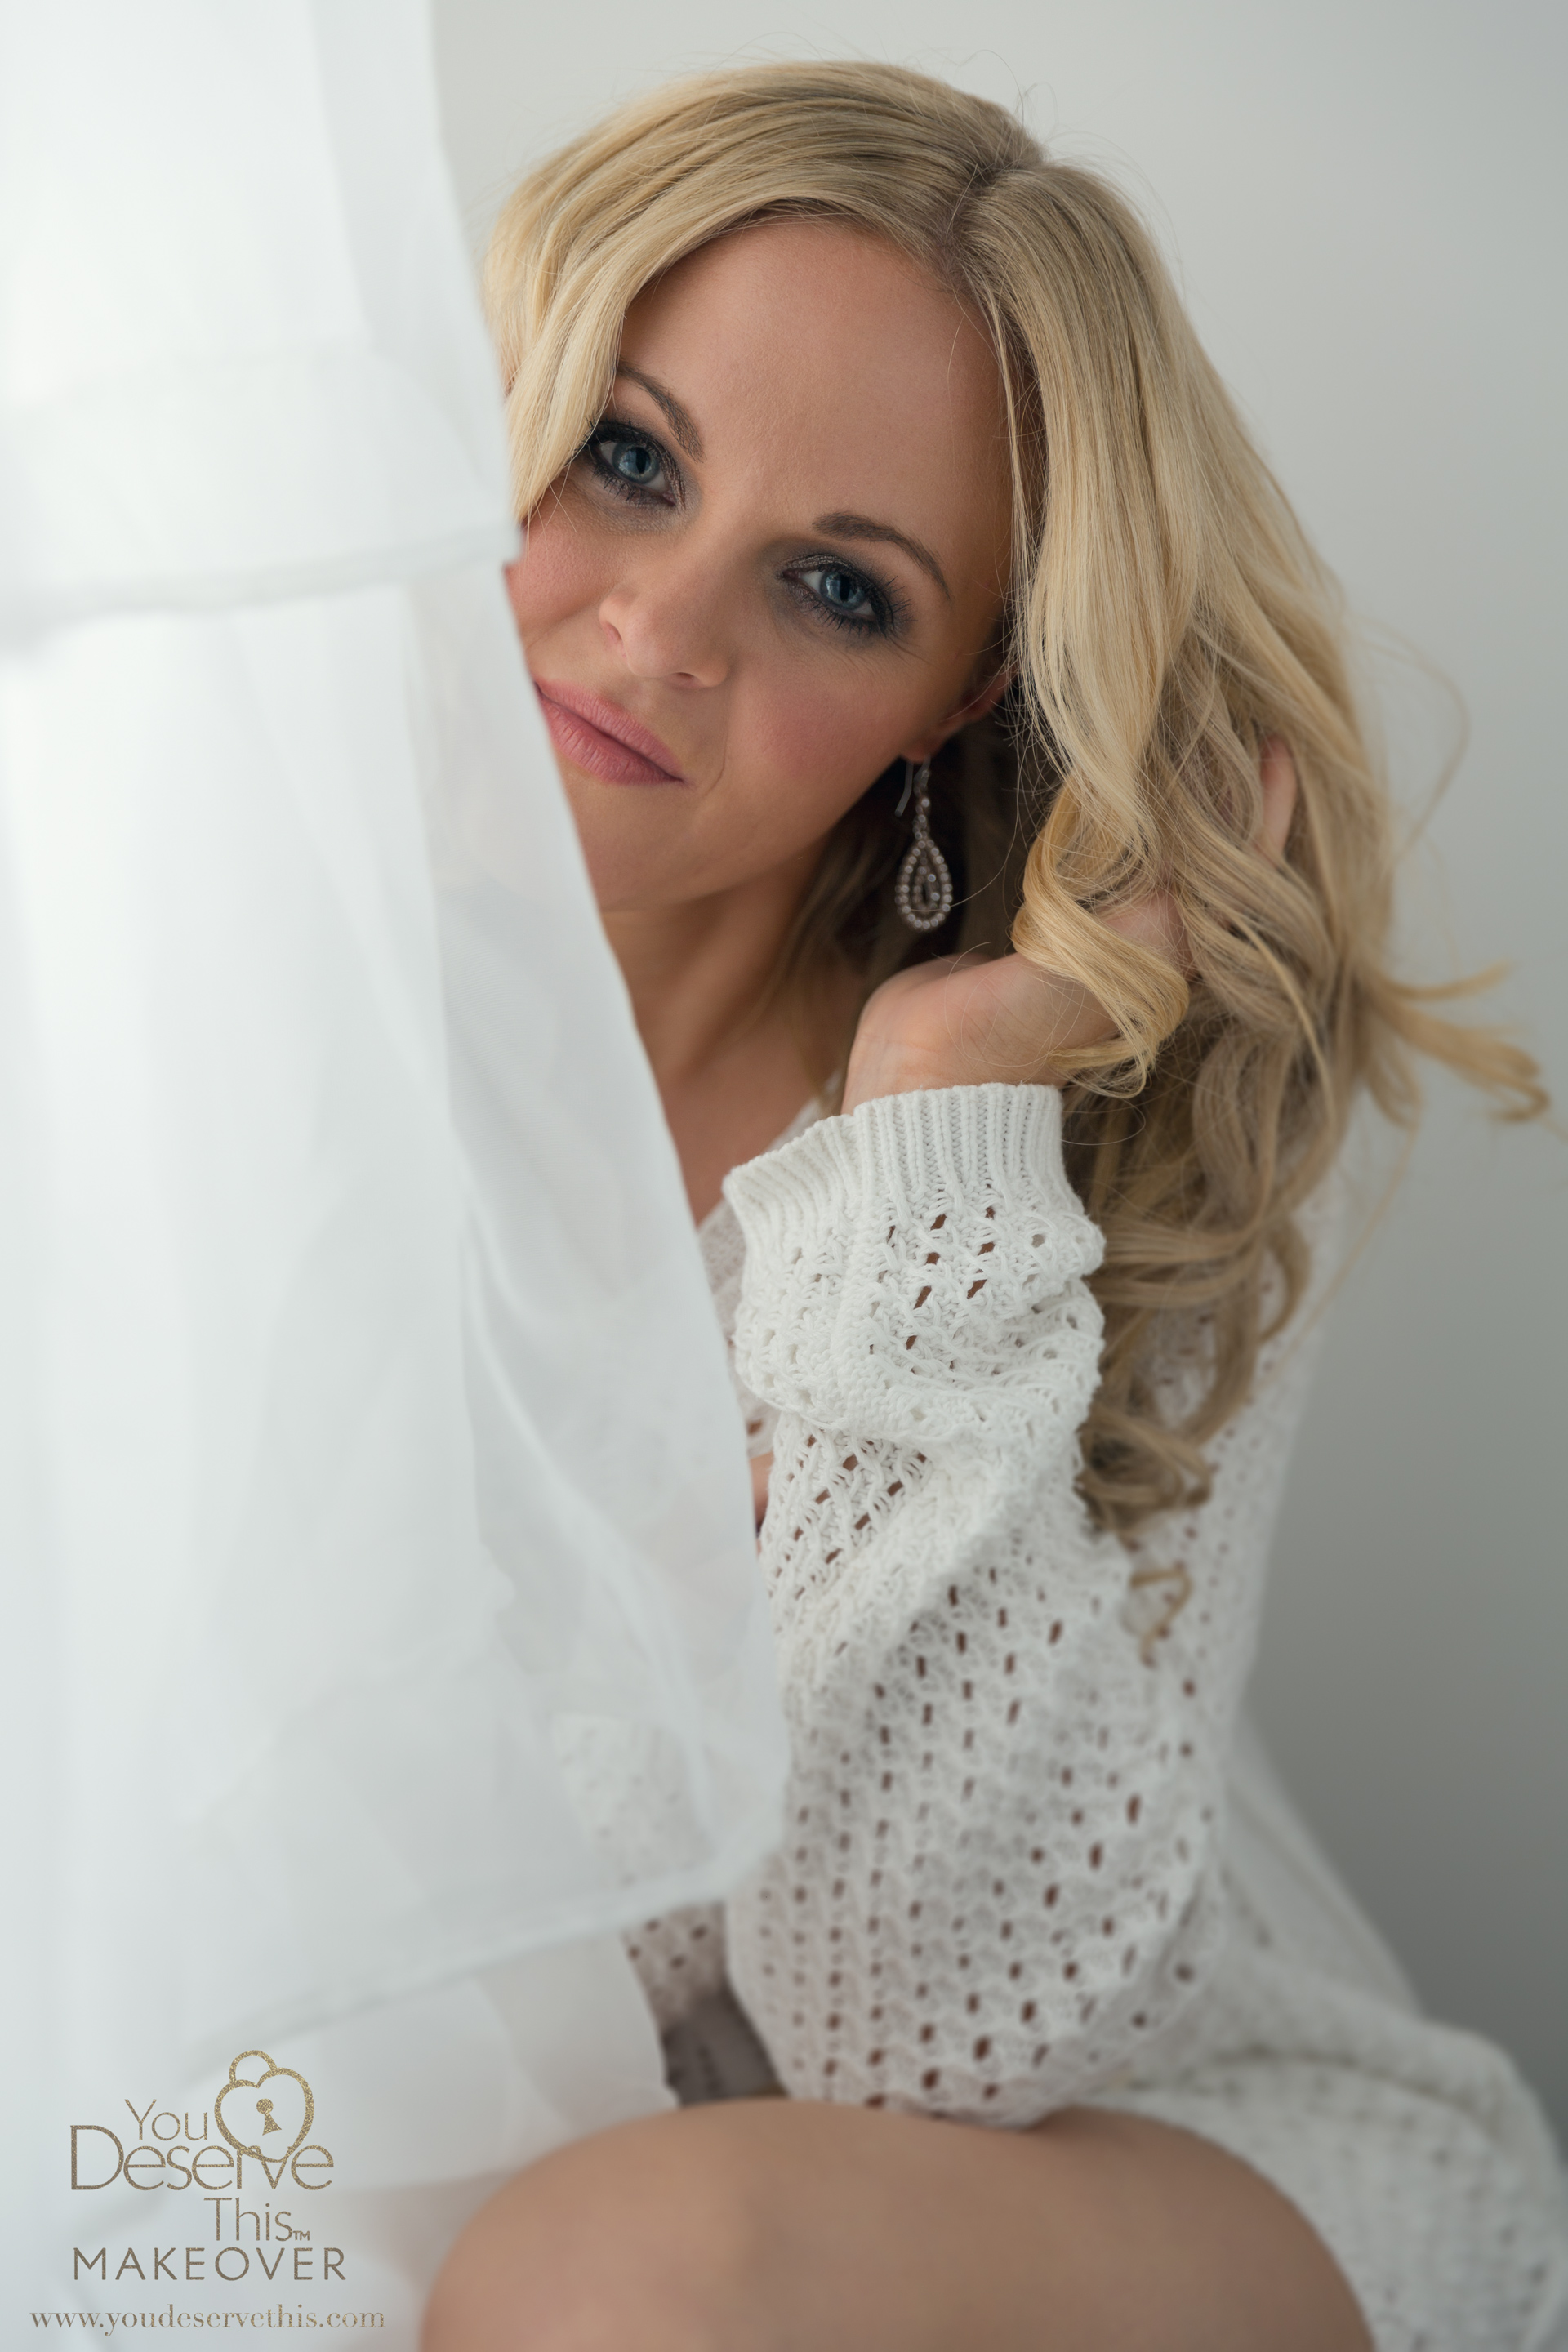 Soft and sensual boudoir photography.  The perfect gift to treat yourself and for the man you love.  www.youdeservethis.com